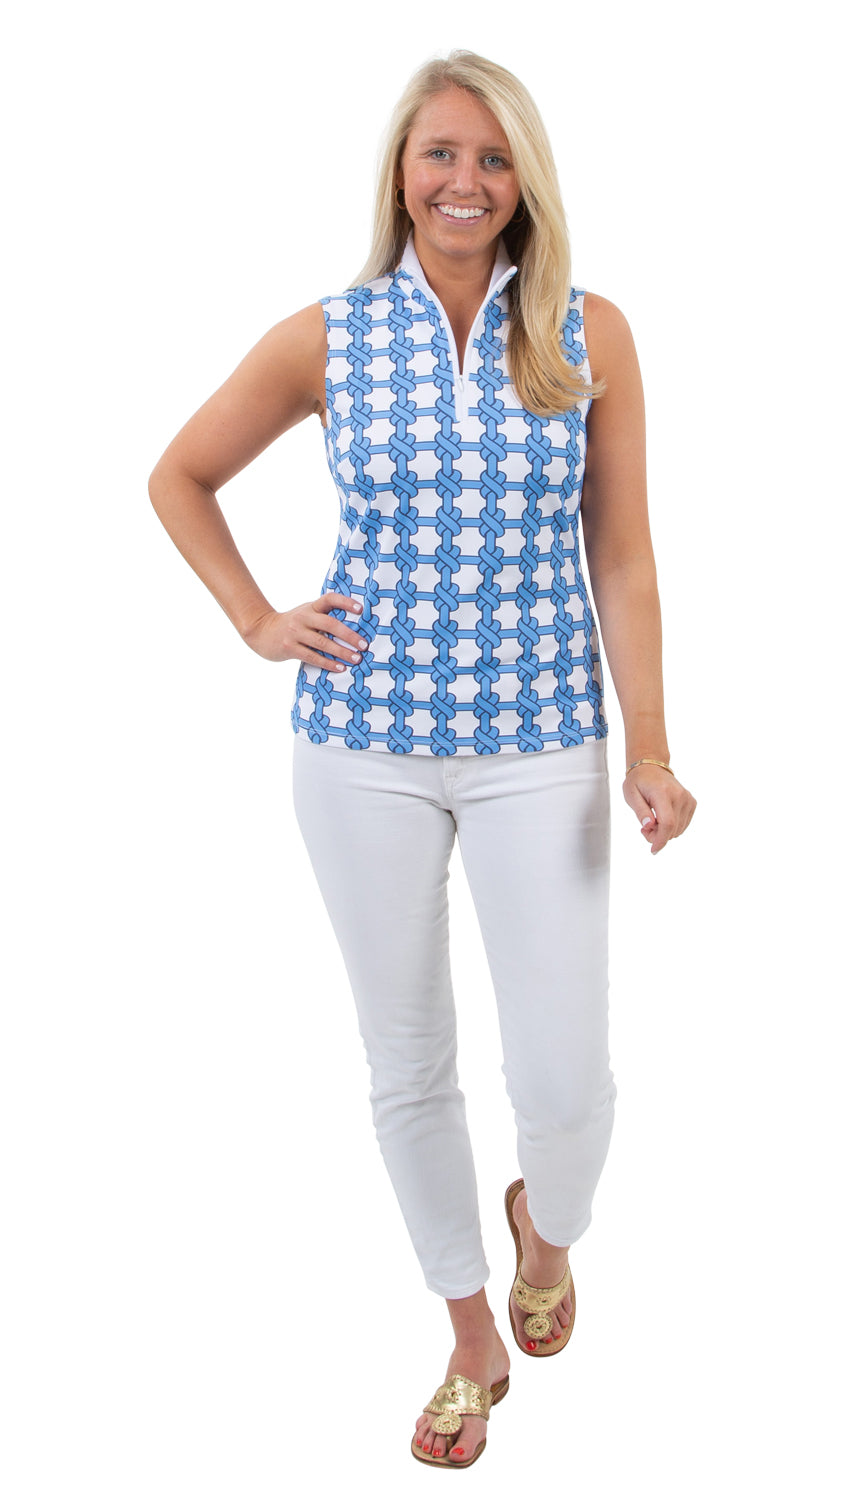 Britt Sleeveless Top - Summer Knot Azure/White